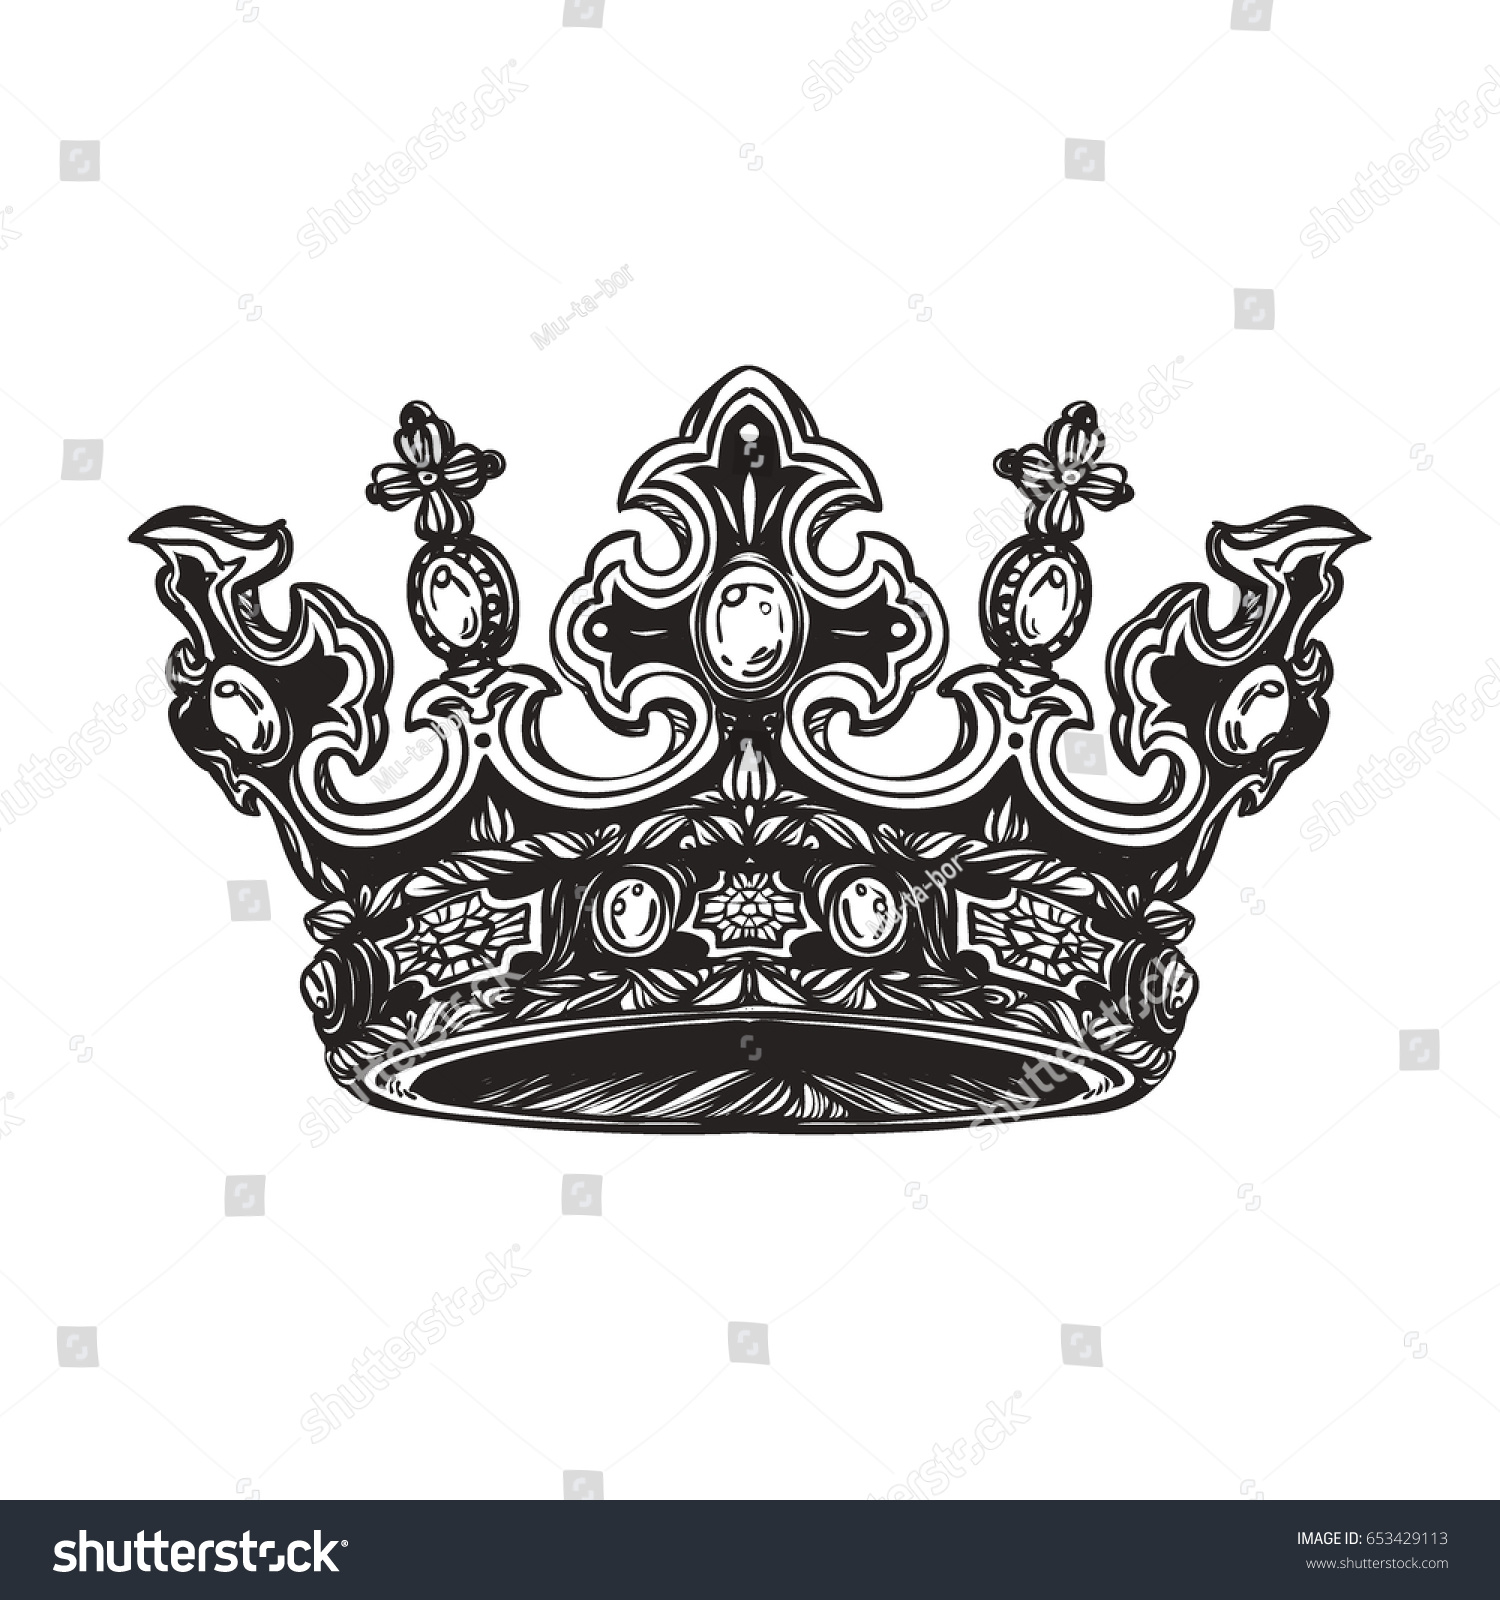 list of synonyms and antonyms of the word imperial crown tattoos. Black Bedroom Furniture Sets. Home Design Ideas